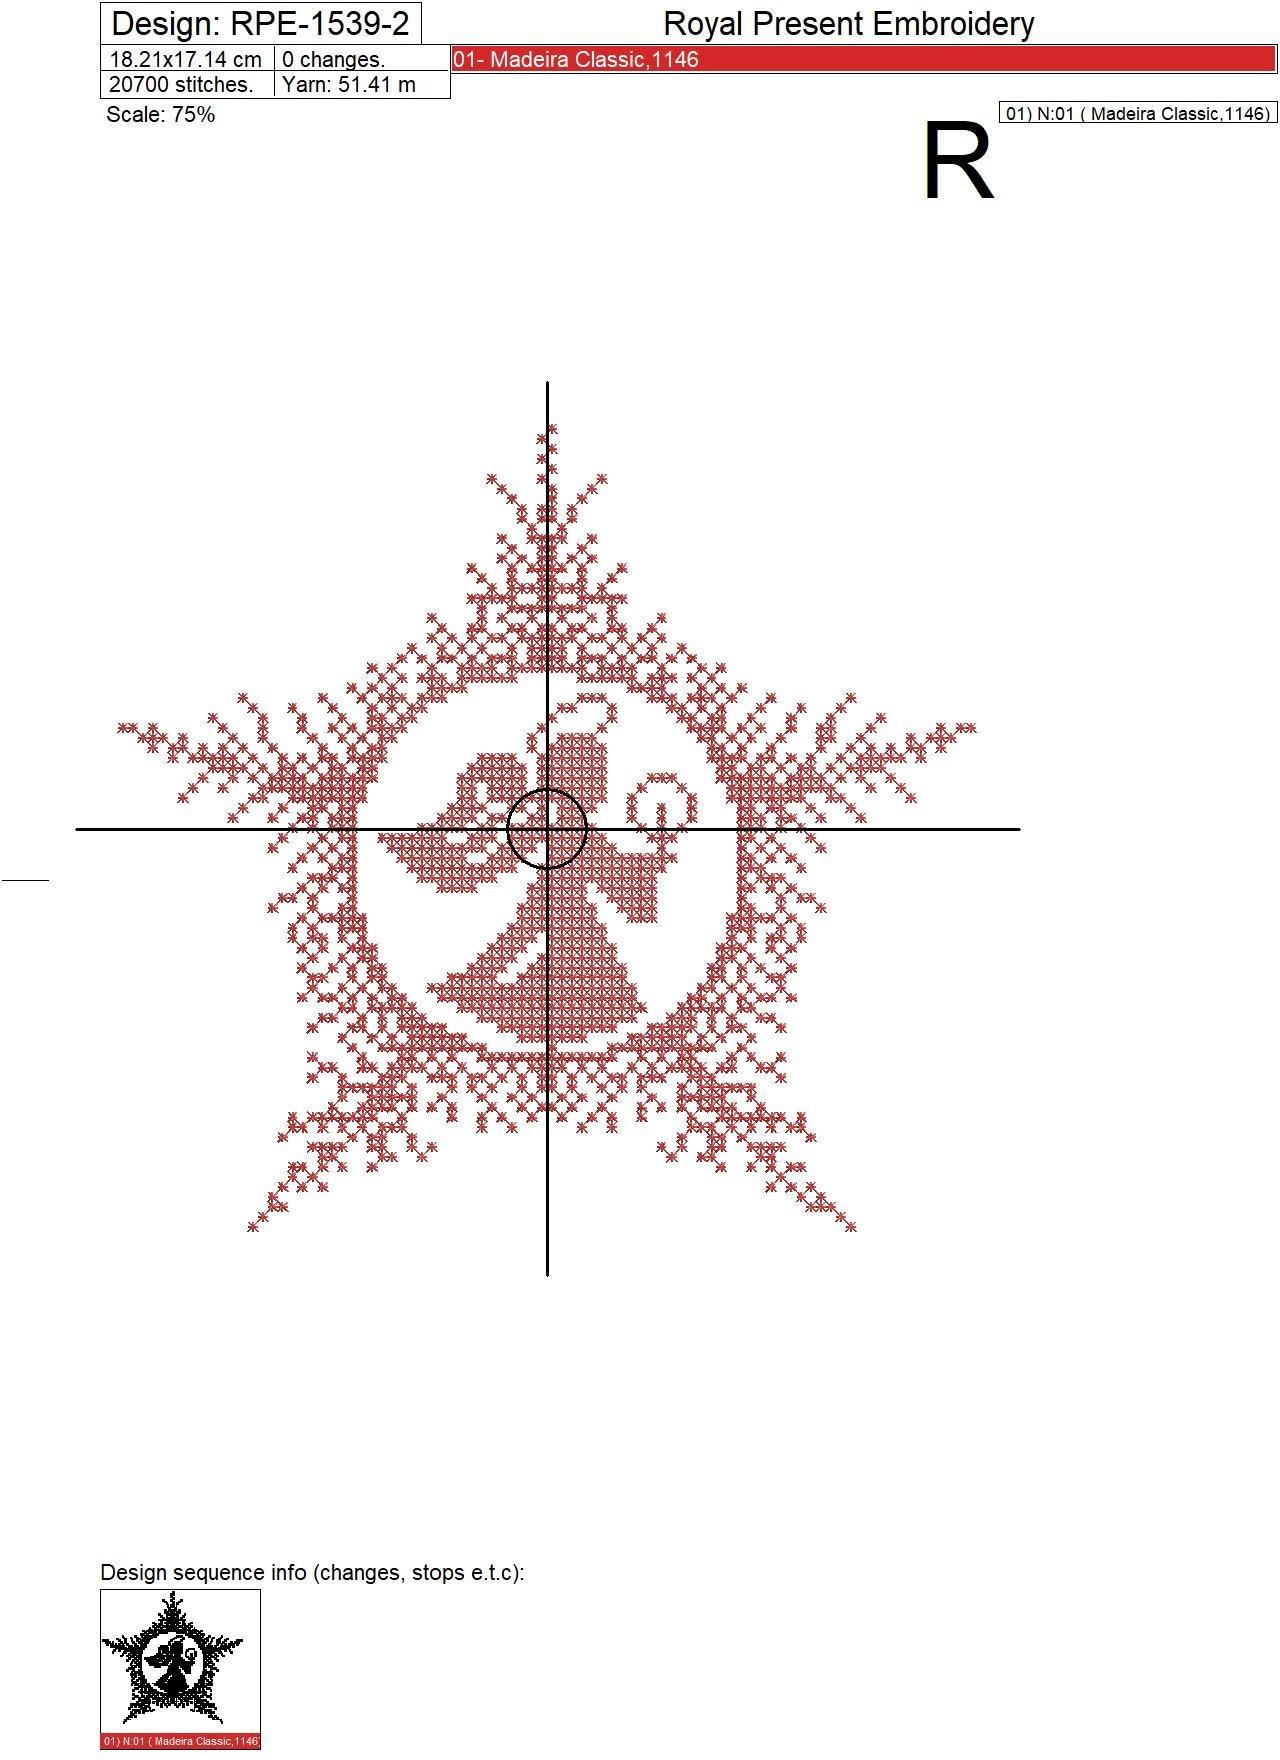 Christmas Angel Cross-stitch Machine Embroidery Design - 4 sizes